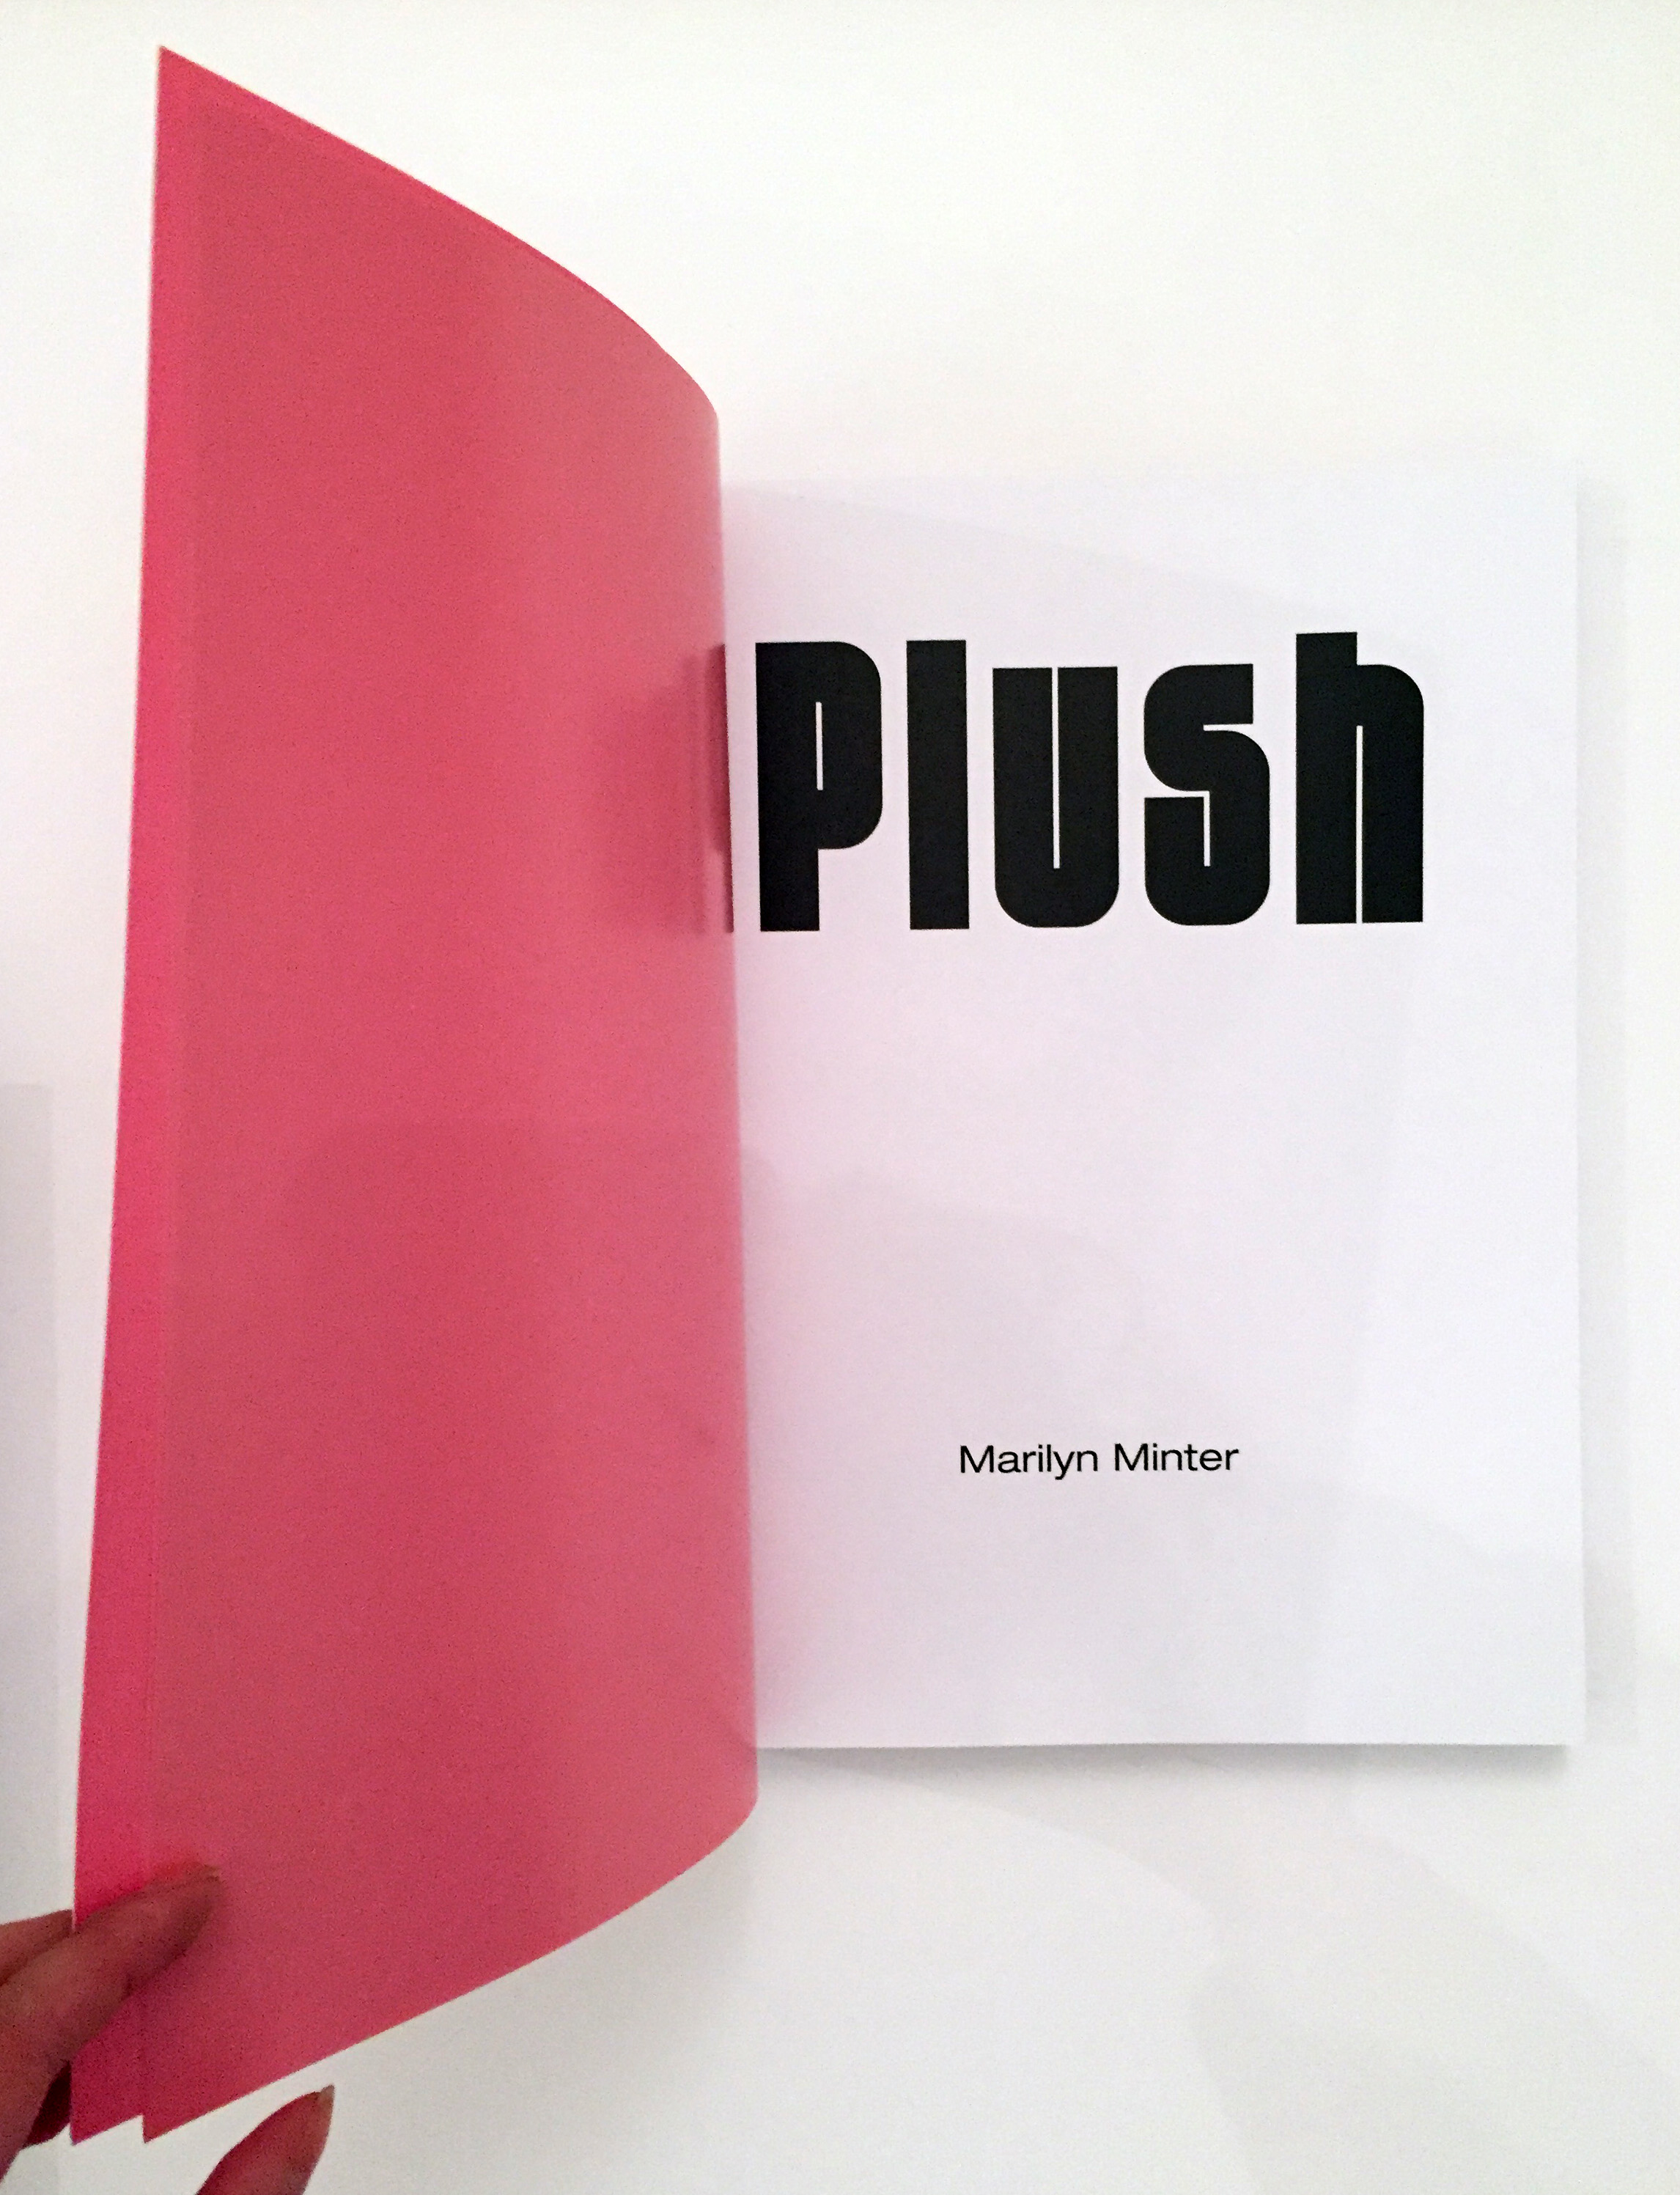 The title page of Plush. (Courtesy the artist and Fulton Ryder)